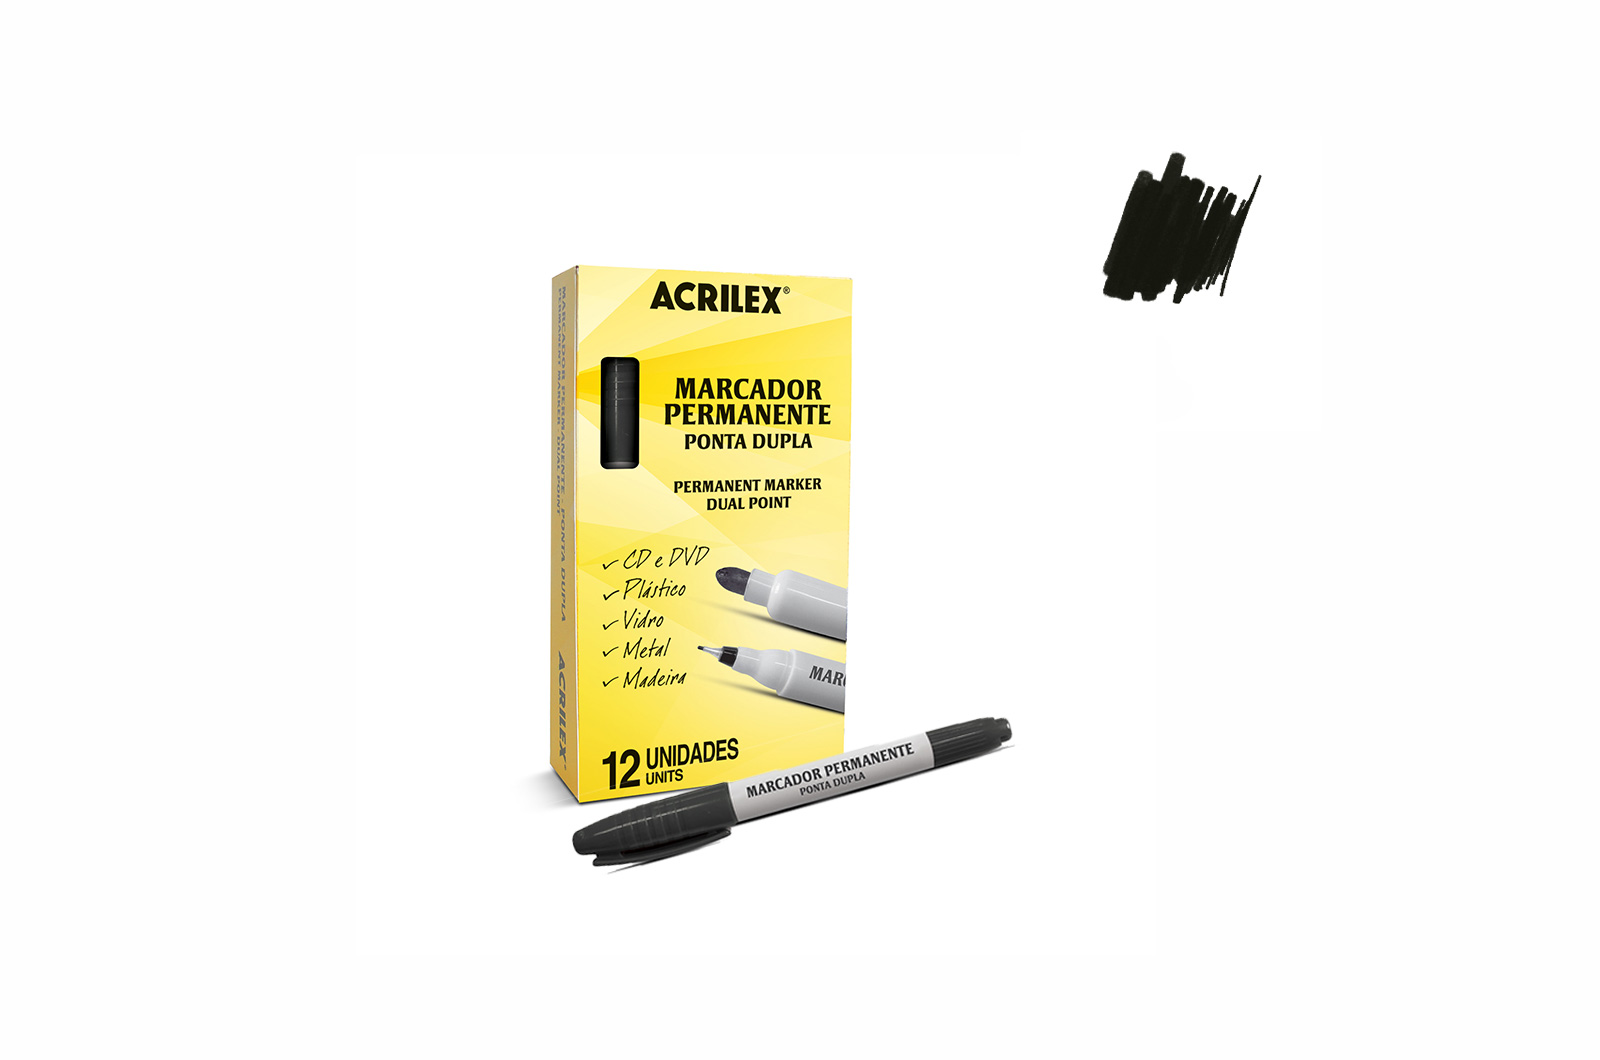 PARMANENT MARKER DUAL POINT BLACK 06212520 ACRILEX